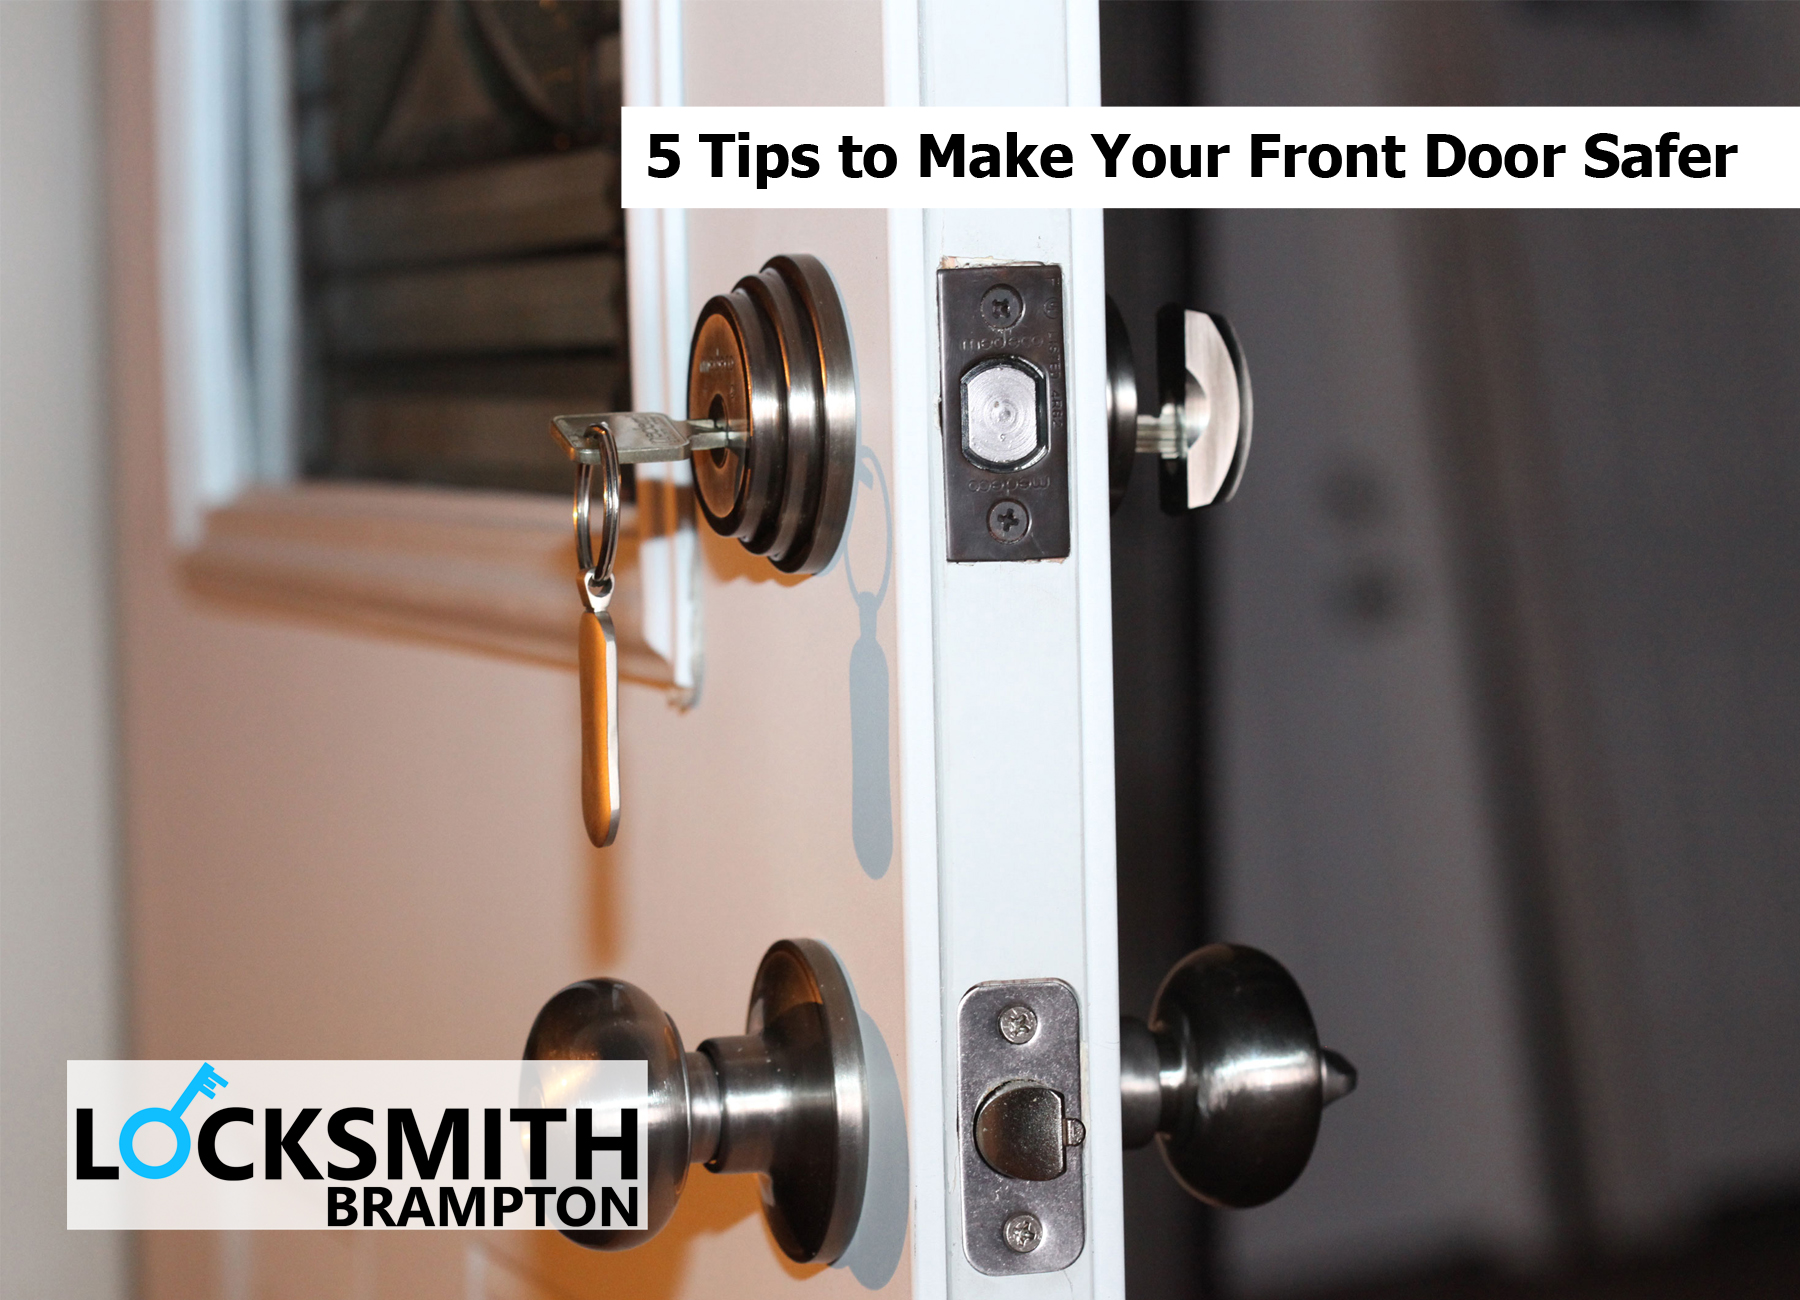 5 Tips to Make Your Front Door Safer